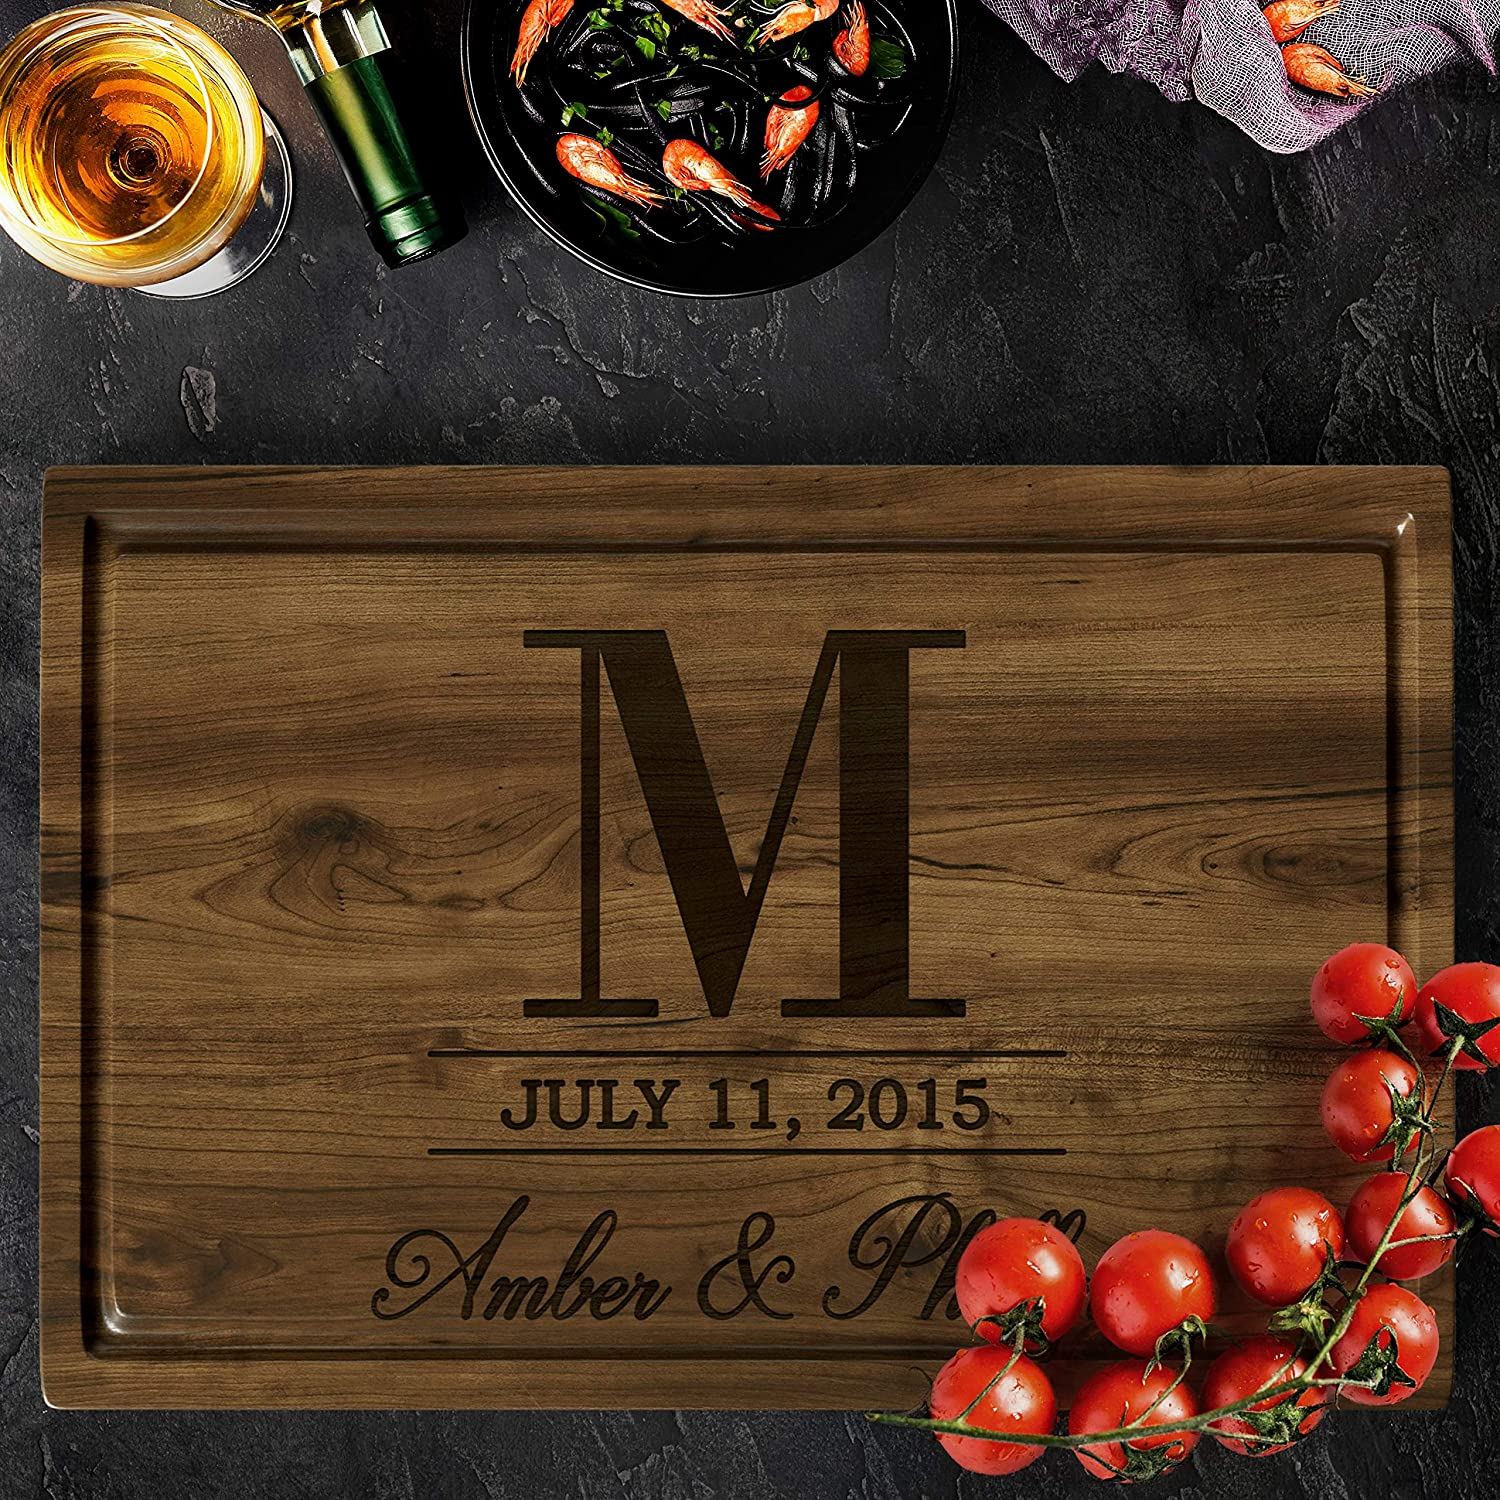 Personalized Walnut Cutting Board with Coasters Oil shop and Elegant Mineral